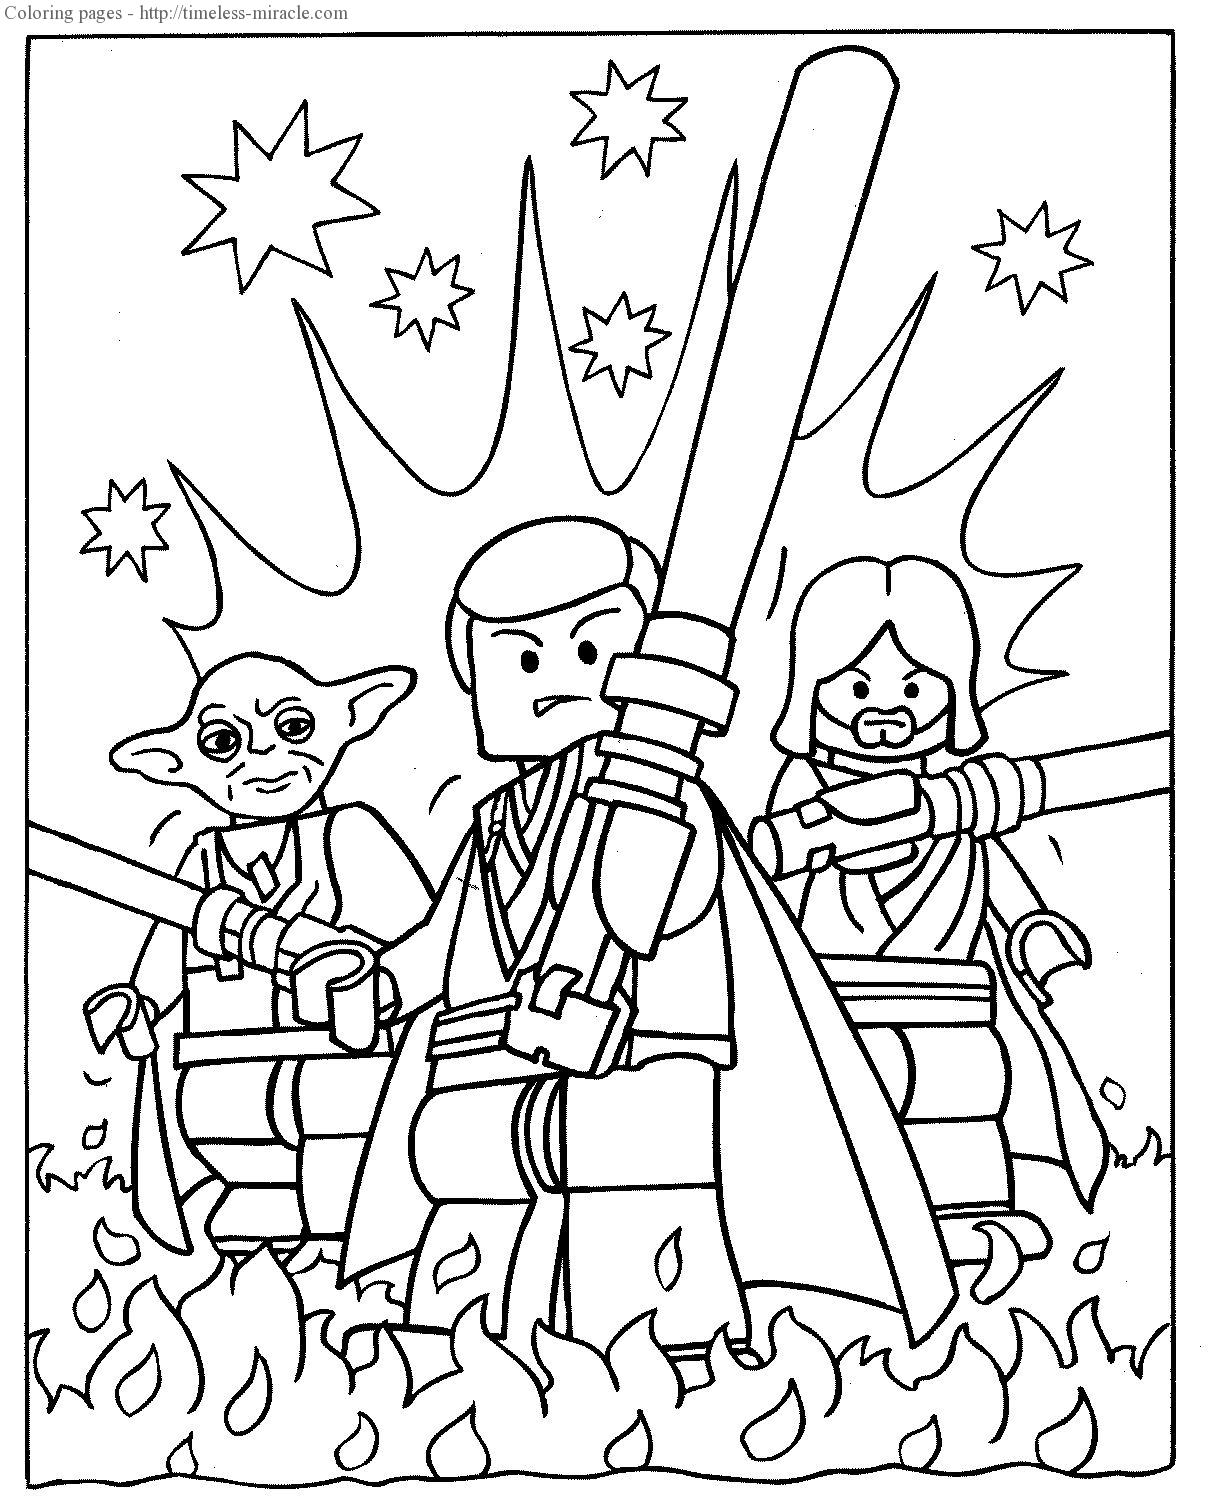 lego star wars coloring book lego star wars coloring pages free printable book wars star lego coloring